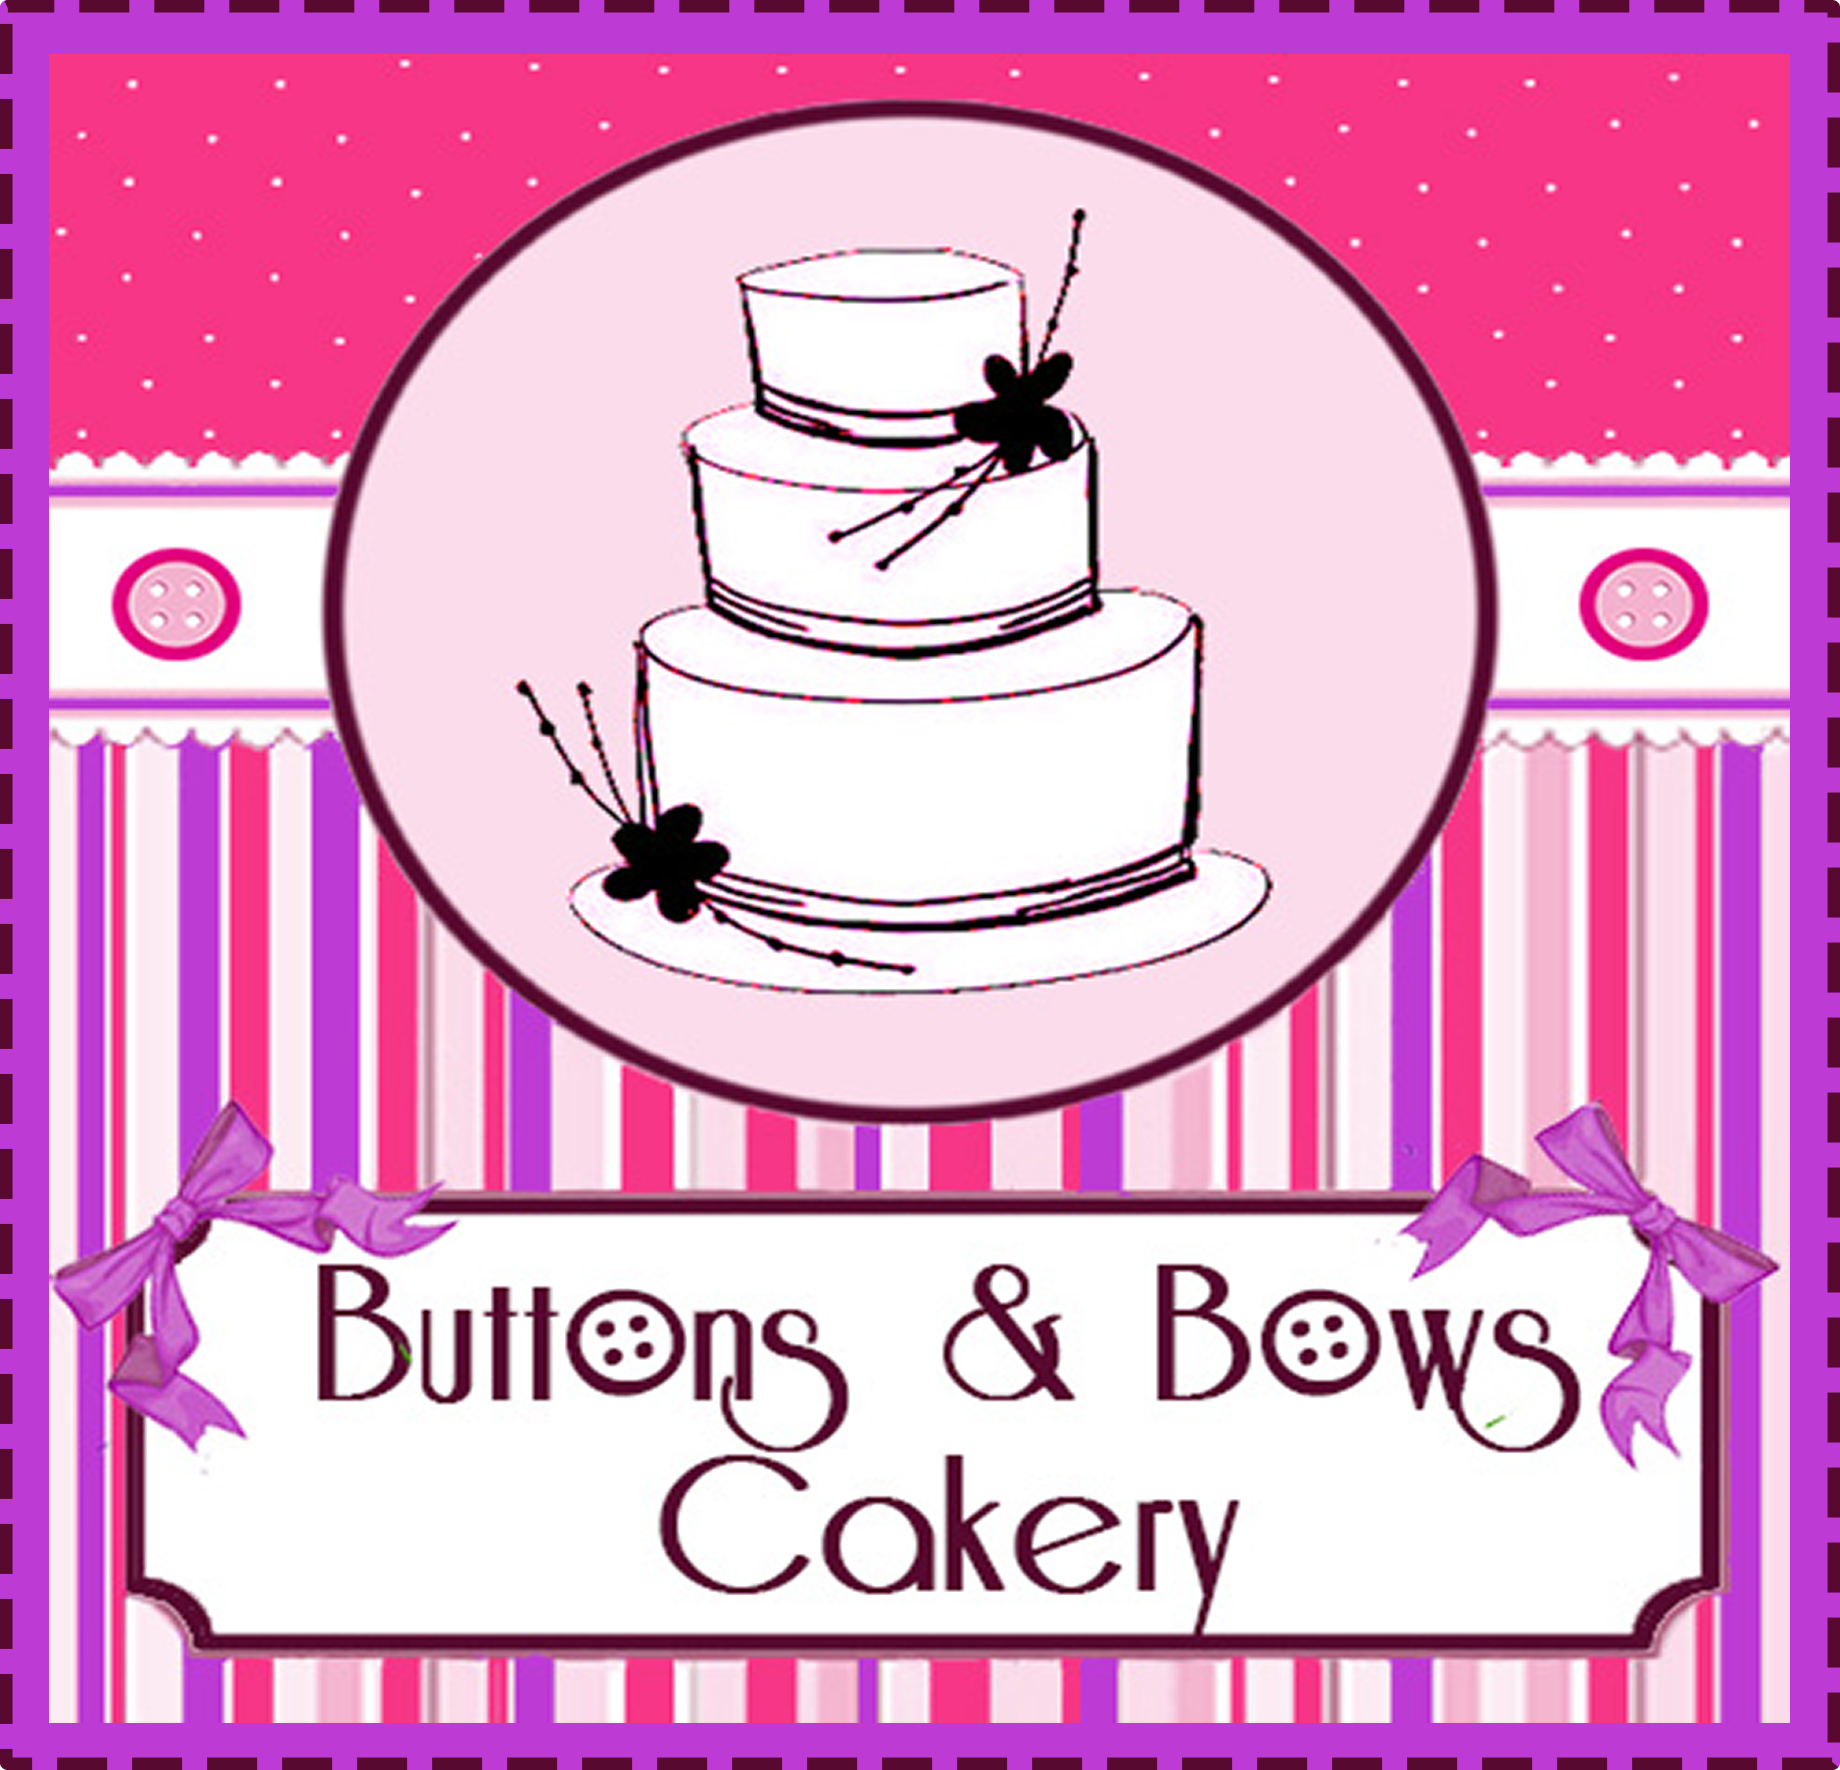 Buttons u0026 Bows Cakery - Buttons And Bows PNG